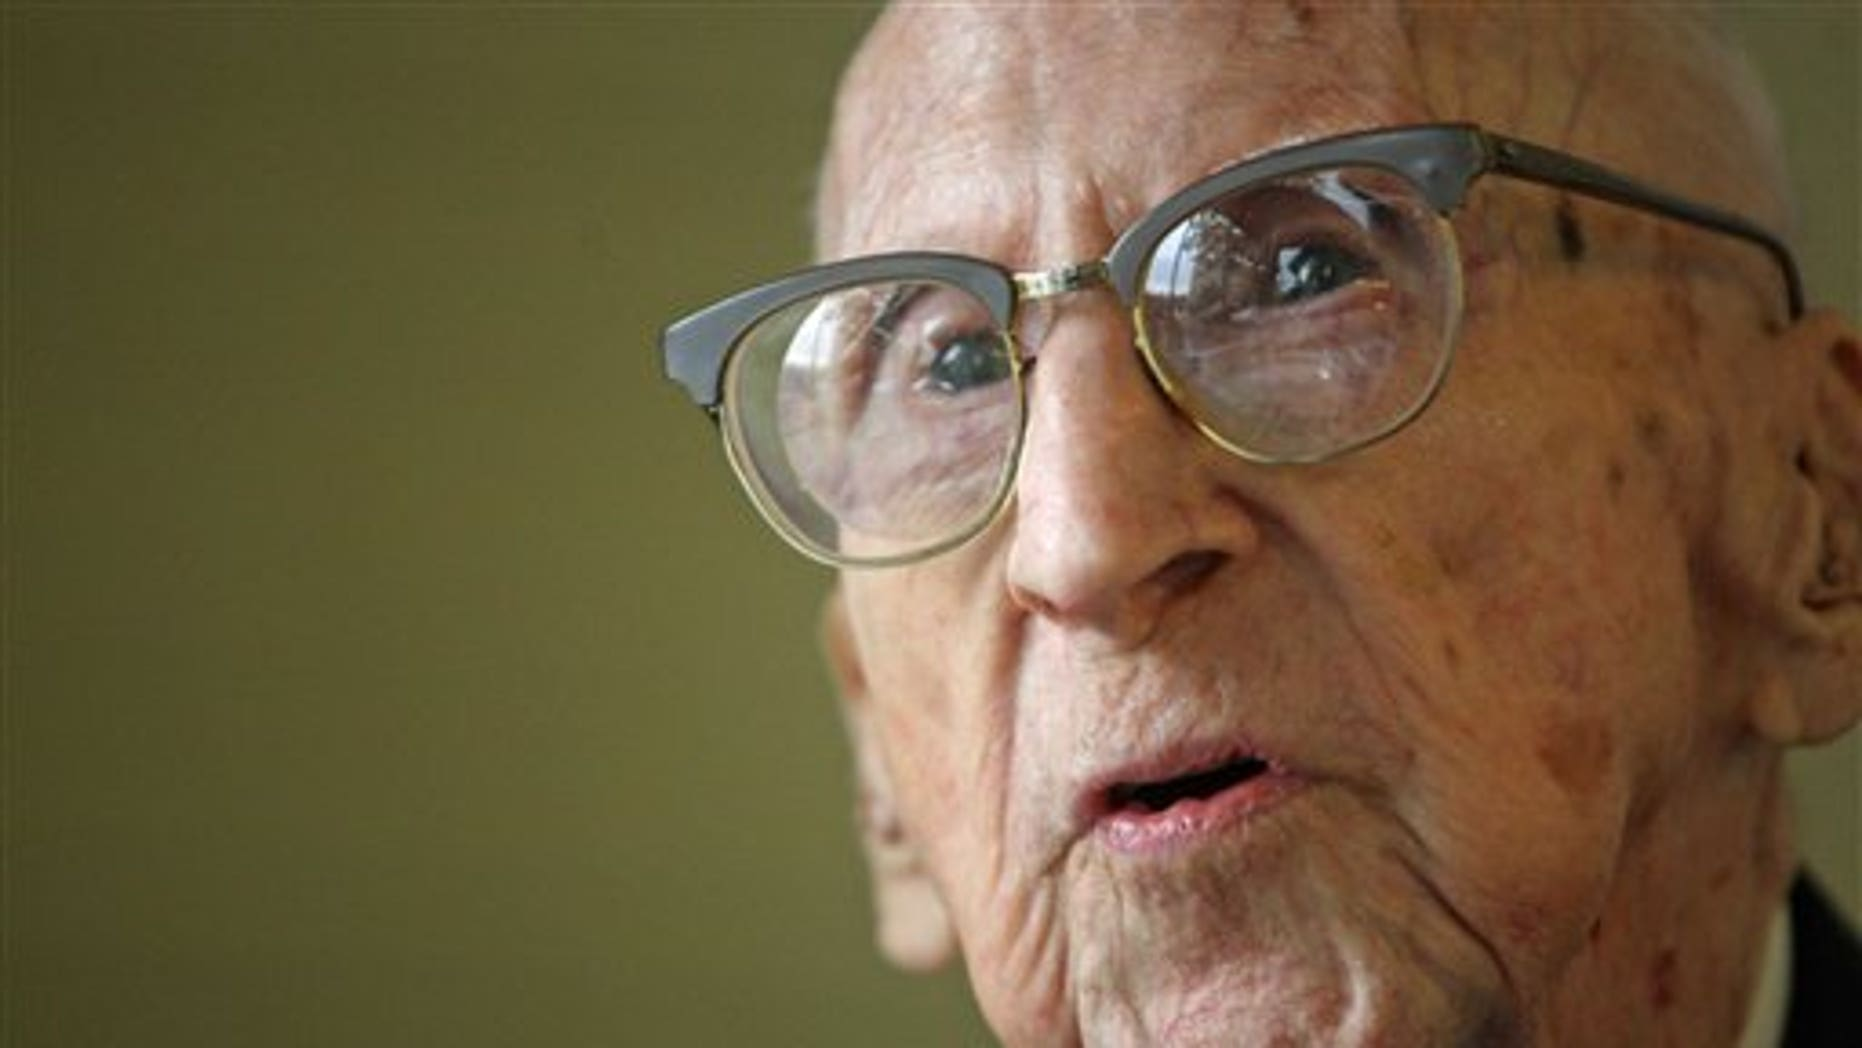 114-year-old Walter Breuning sits for an interview with a reporter for the Associated Press in the lobby of his senior residence in Great Falls, Mont, on  Oct. 6, 2010. Officials at a Montana retirement home say the world's oldest man has died. Walter Breuning was 114, making him the oldest man and the second-oldest person in the world. (AP)